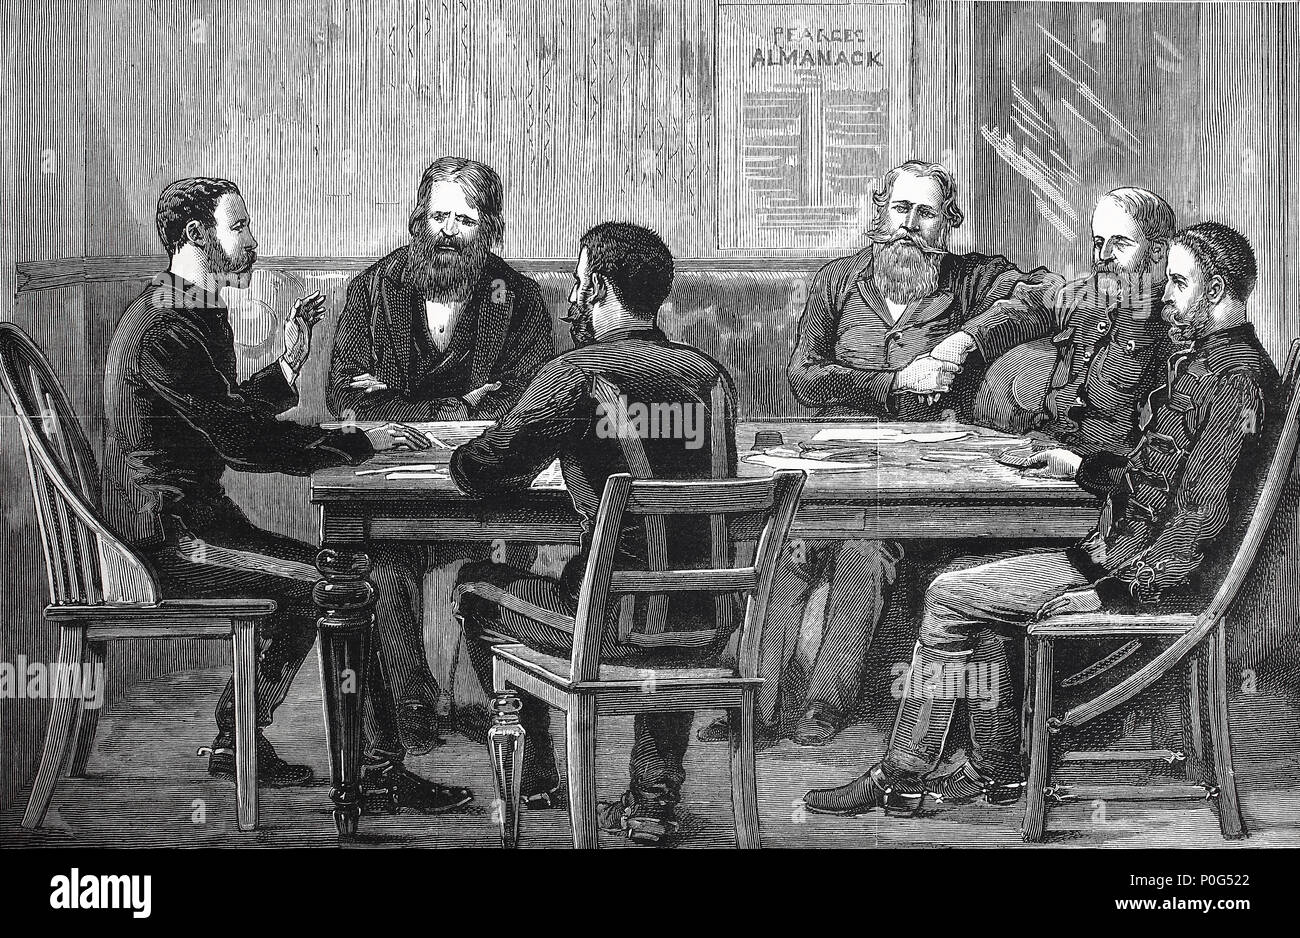 interior of o'Neill's farm house, meeting of general Wood and general Joubert, March, 18, 1881, Petrus Jacobus Joubert (20 January 1831 or 1834 - 28 March 1900), better known as Piet Joubert, was Commandant-General of the South African Republic from 1880 to 1900, digital improved reproduction of an original print from the year 1881 - Stock Image